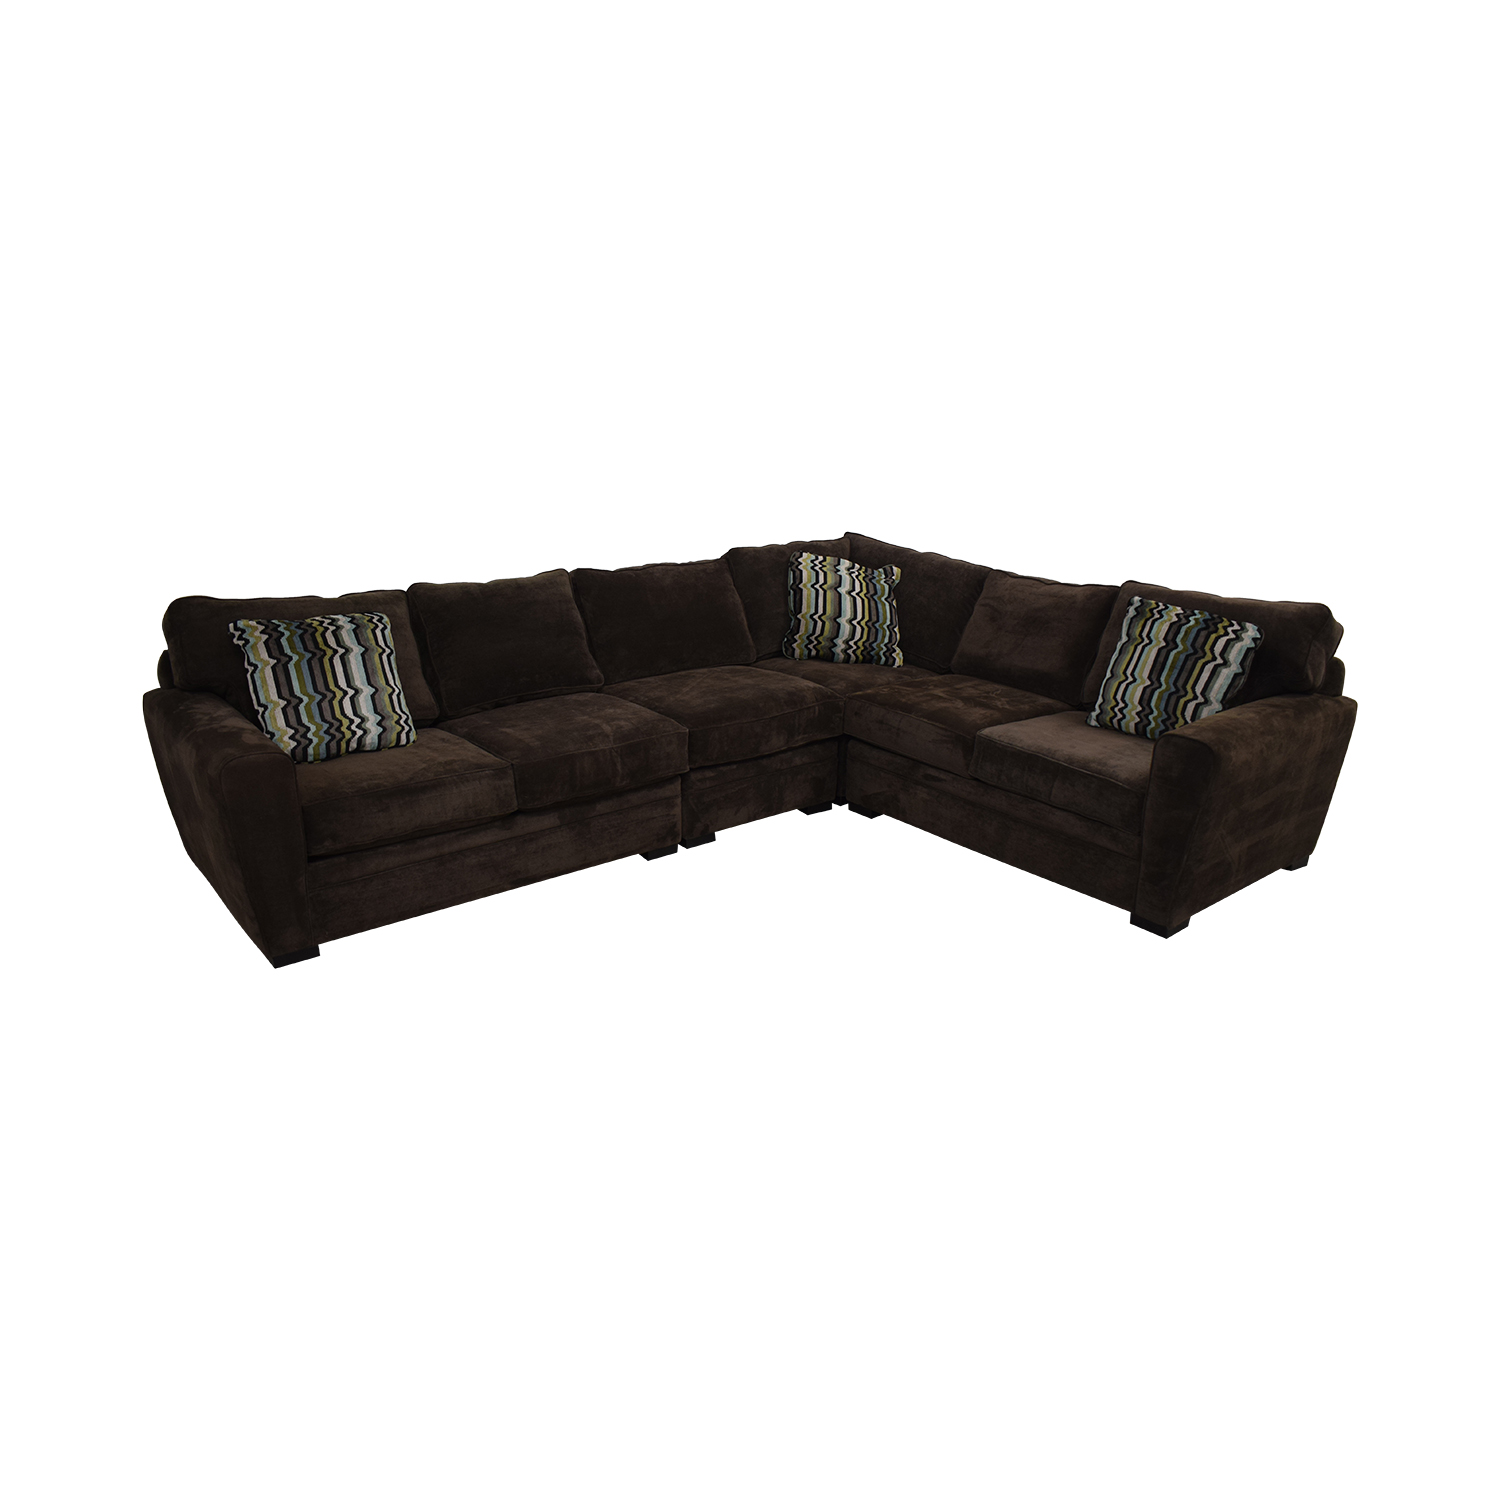 Raymour & Flanigan Raymour & Flanigan Brown Velvet L-Shaped Sectional price